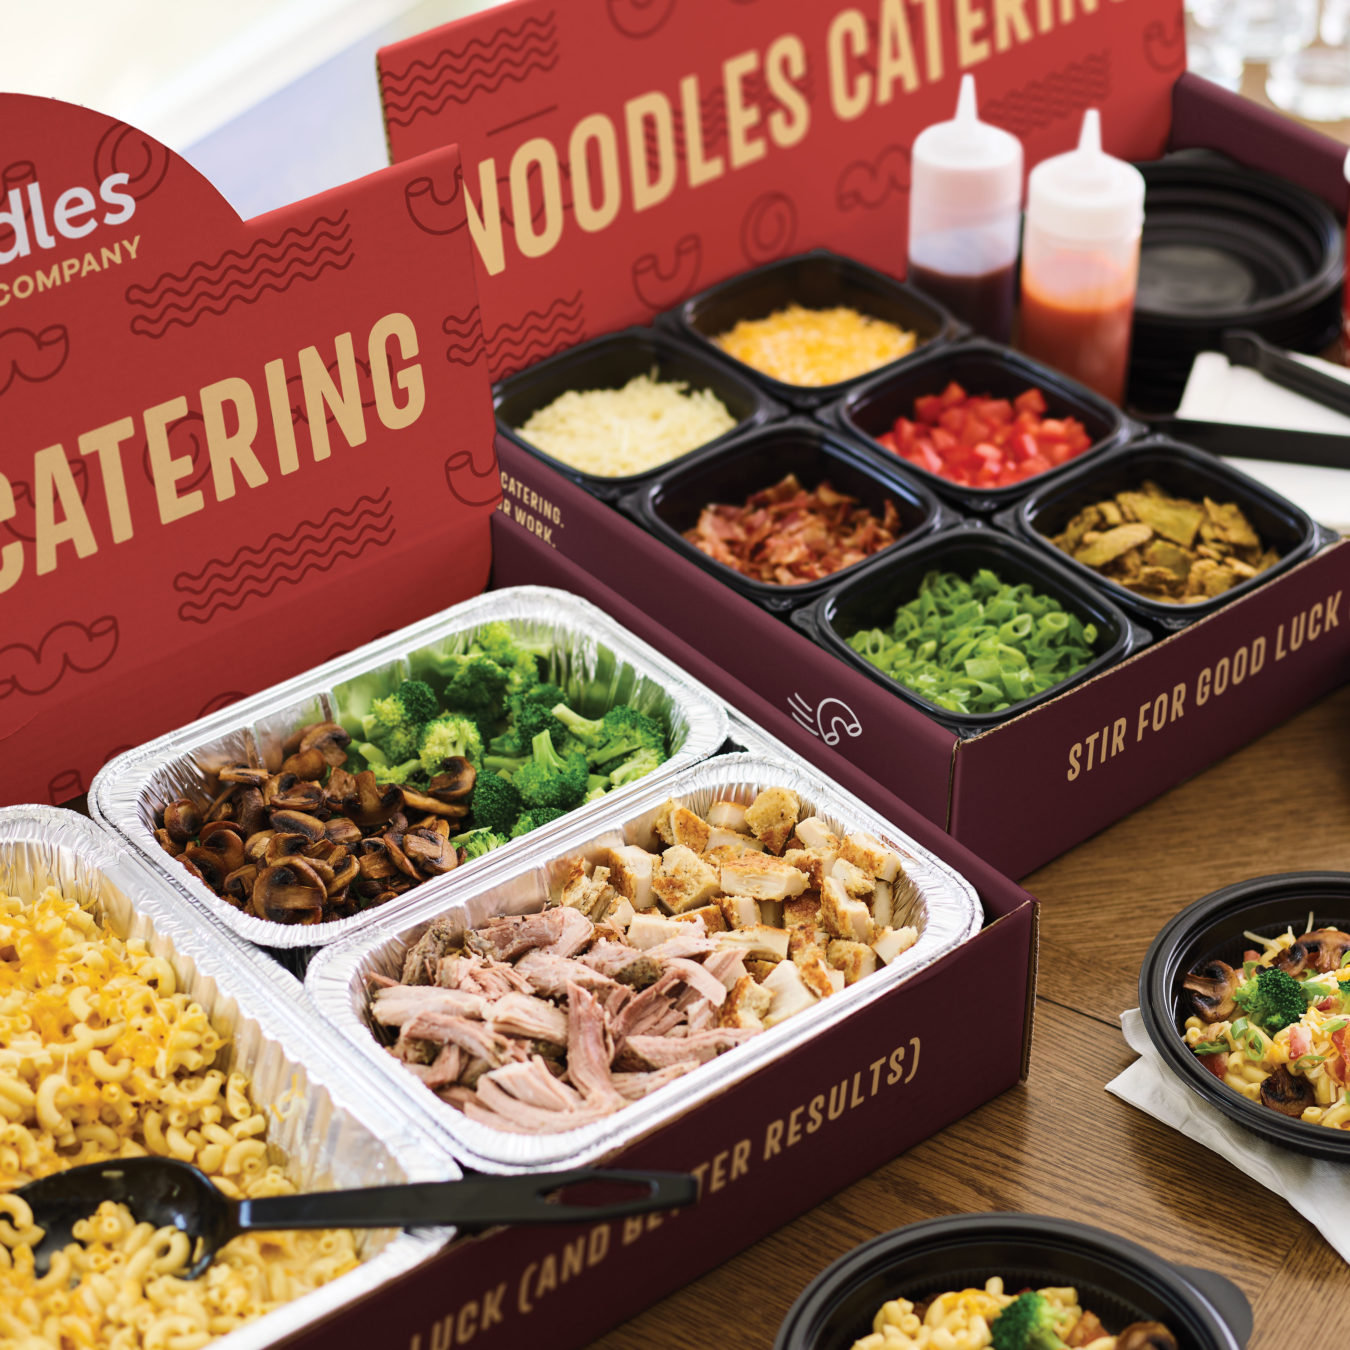 Noodles Mac & Cheese Catering Bar